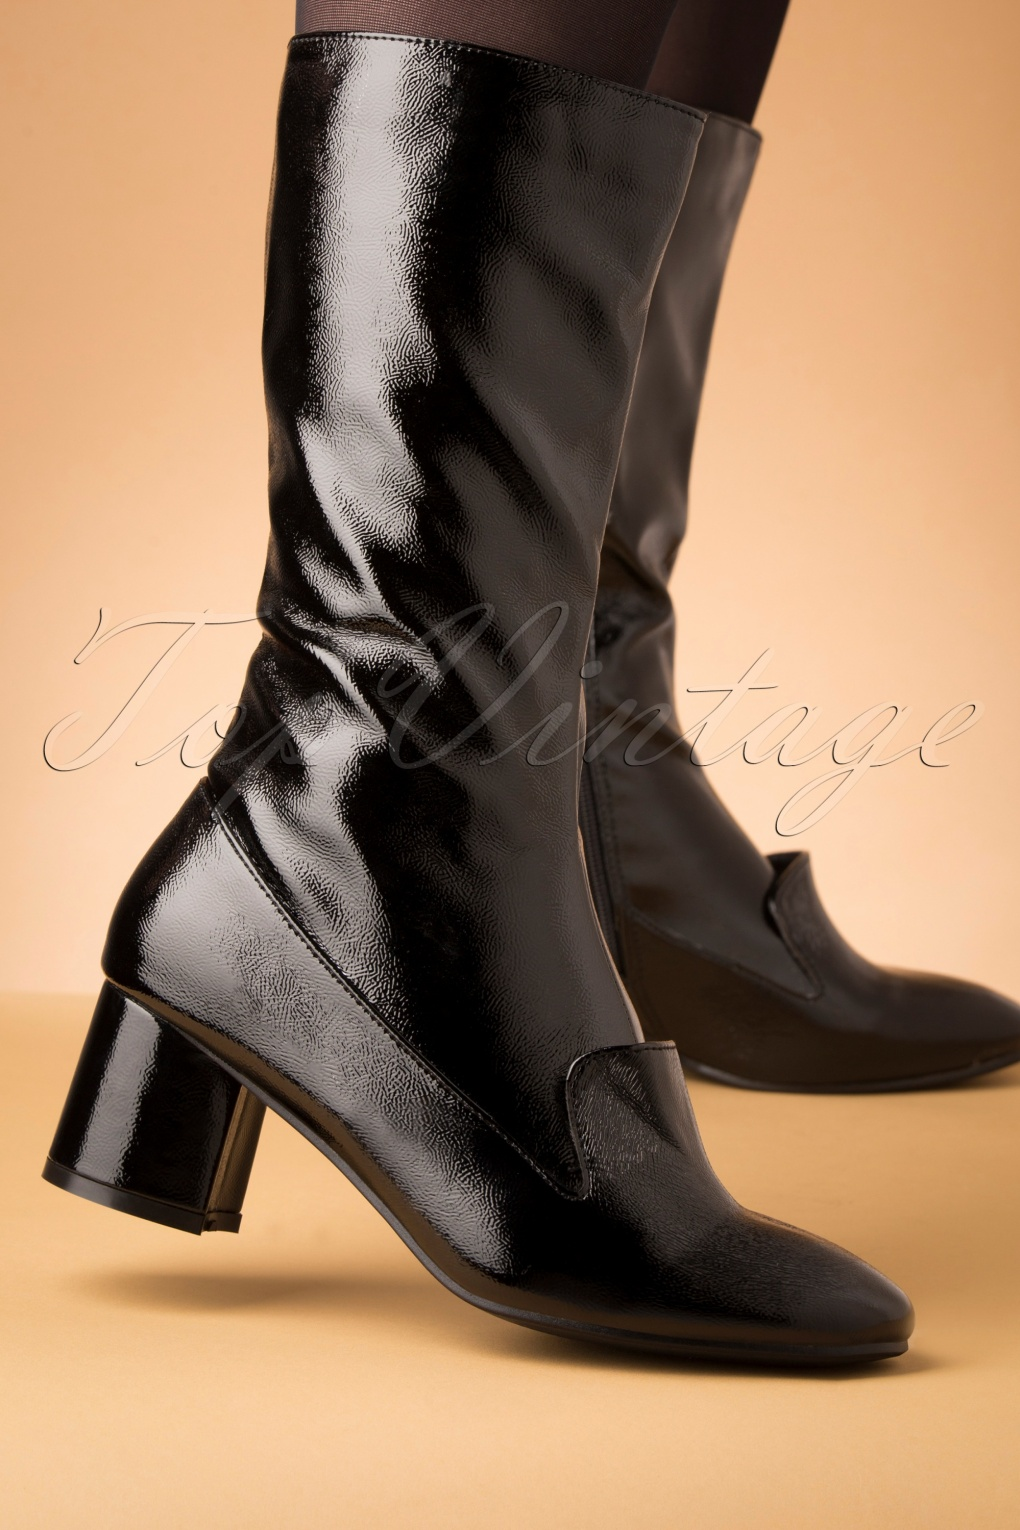 Vintage Style Shoes, Vintage Inspired Shoes 60s The Modernist Patent Boots in Black £71.54 AT vintagedancer.com